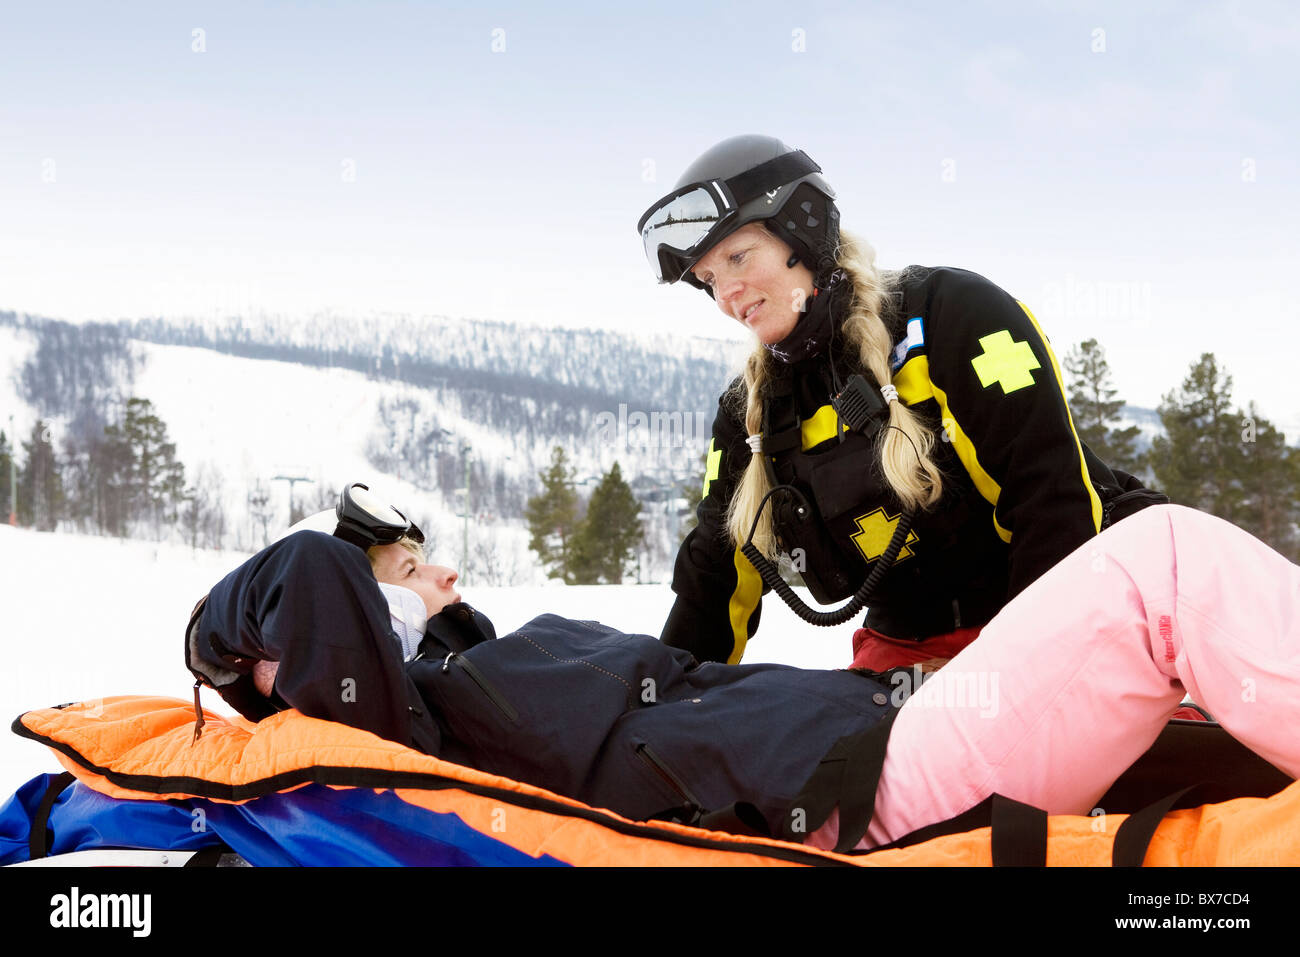 Woman Rescuer with Skier - Stock Image